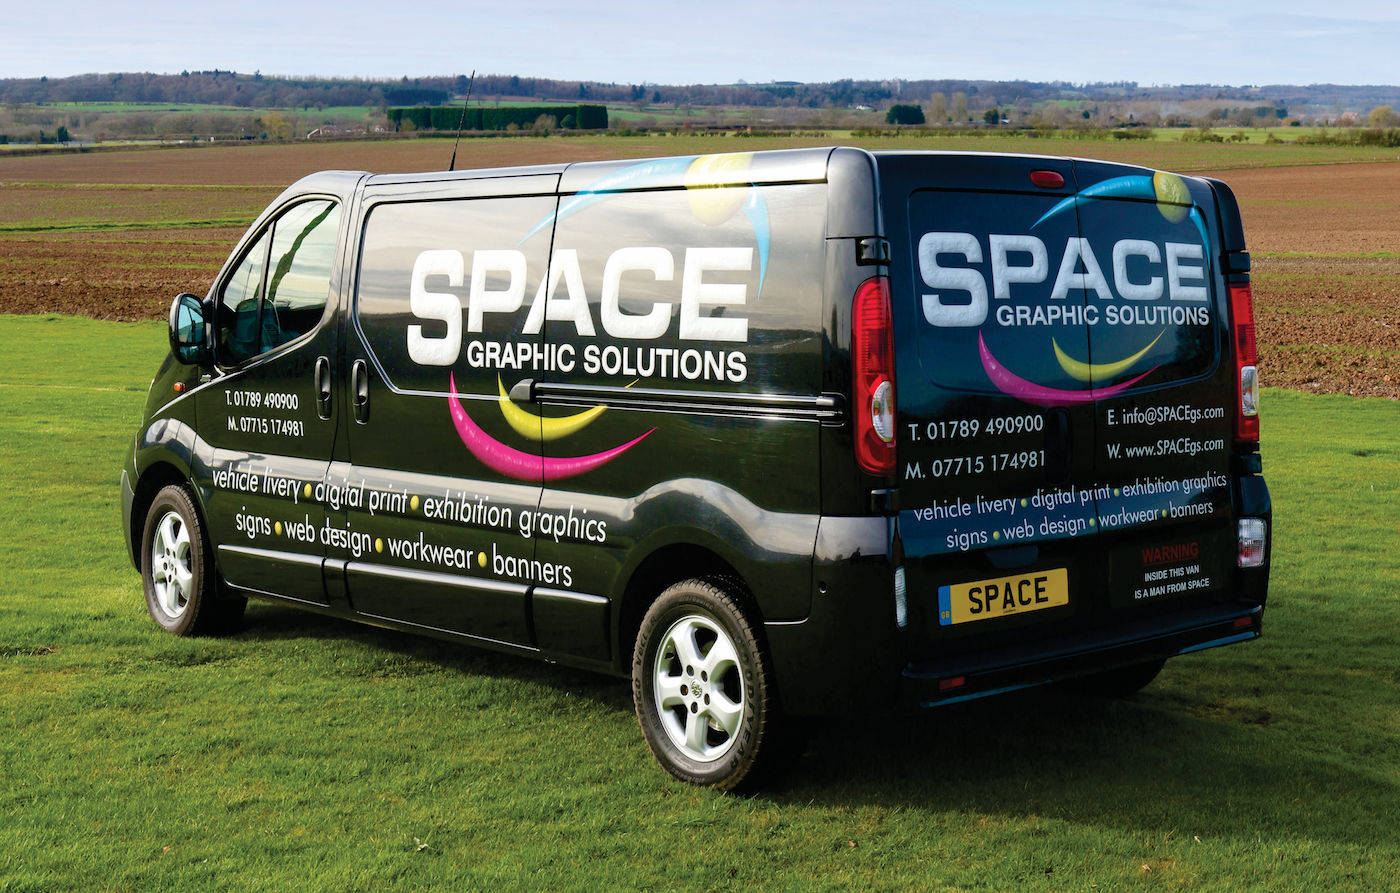 Space Graphic Solutions - Full Vehicle Wraps - Stratford upon Avon